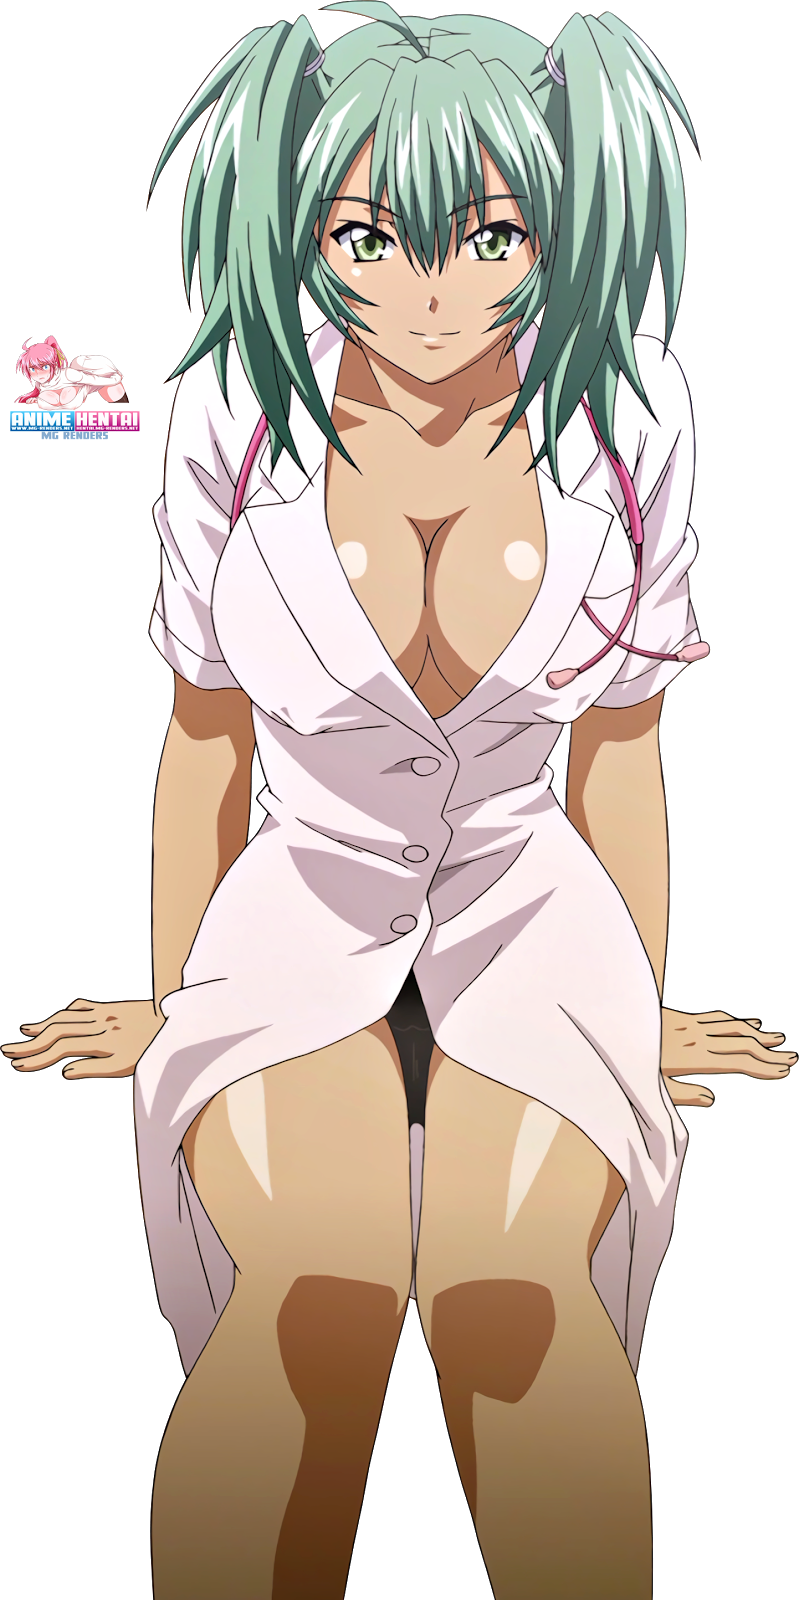 Tags: Anime, Render,  Ikkitousen,  Nurse,  Ryofu Housen,  PNG, Image, Picture